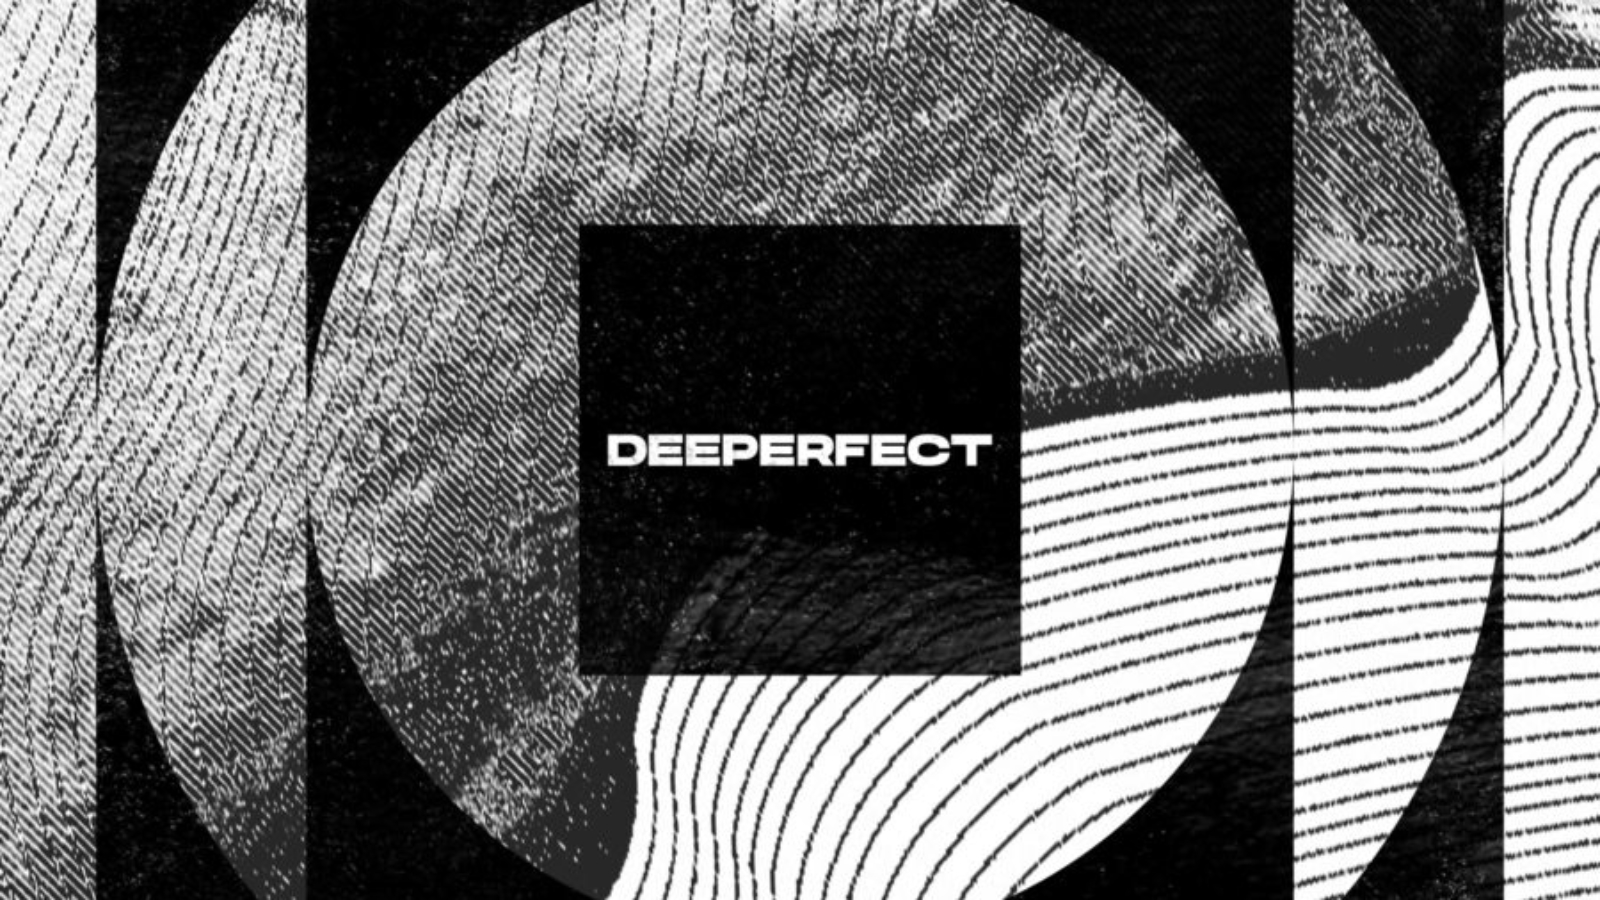 deeperfect-cover-ep-square-109-notex